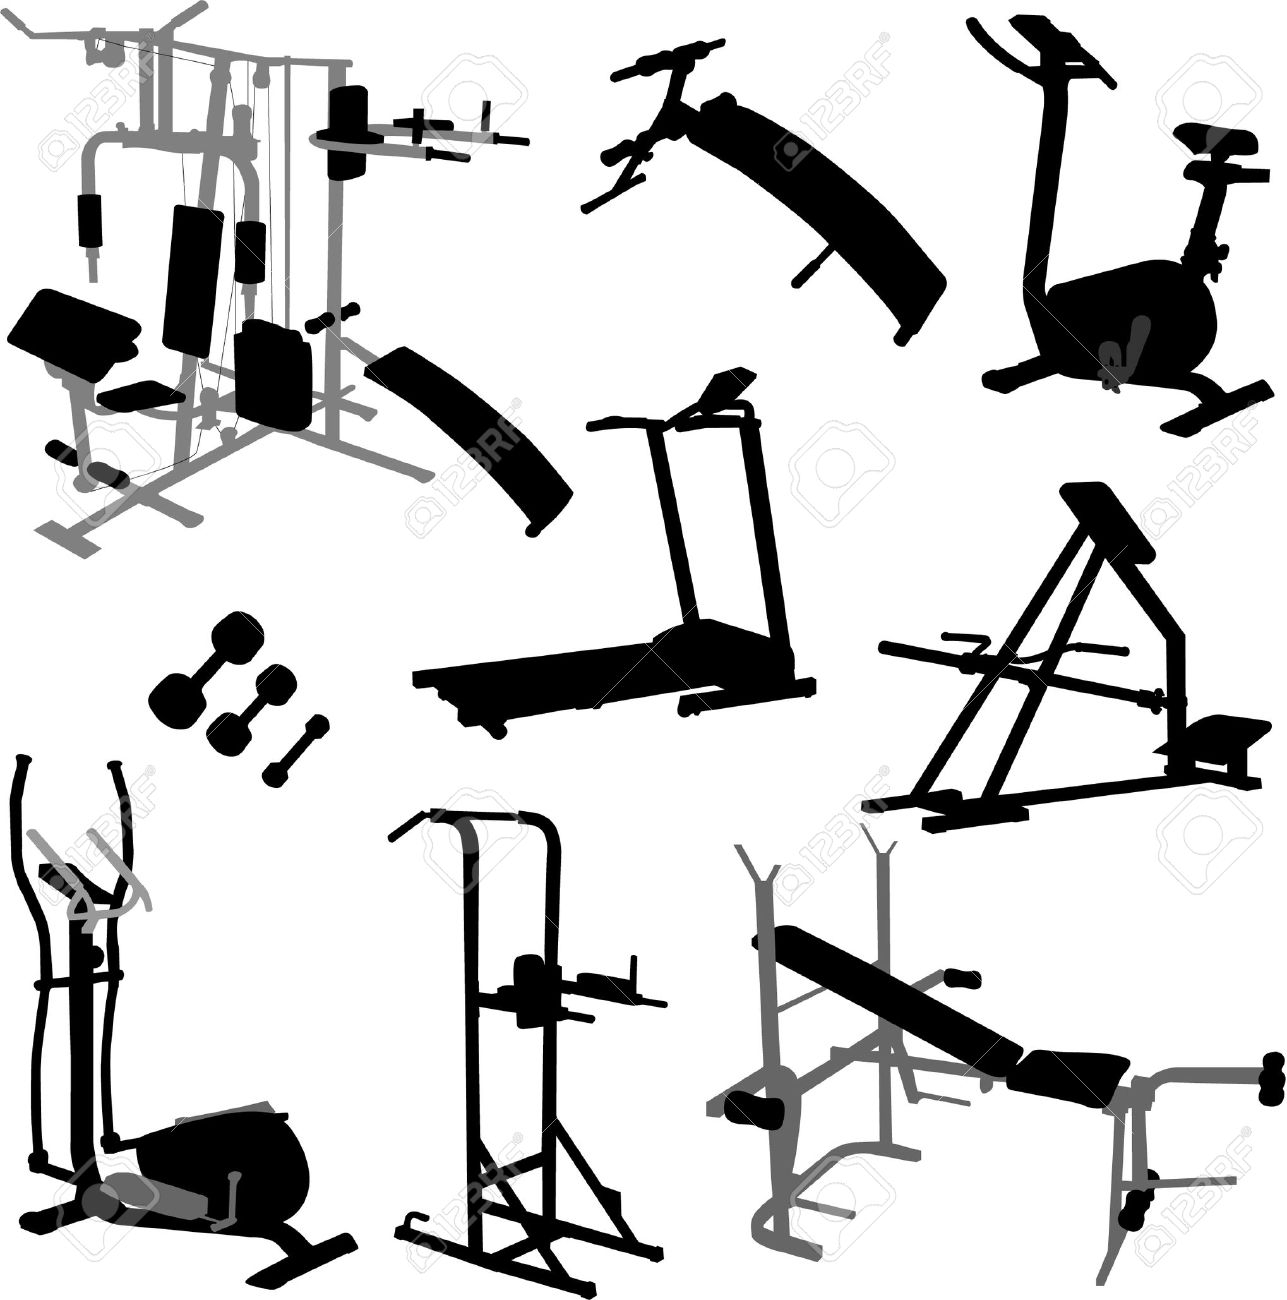 Gym Equipment Vector Royalty Free Cliparts Vectors And Stock Illustration Image 9040568